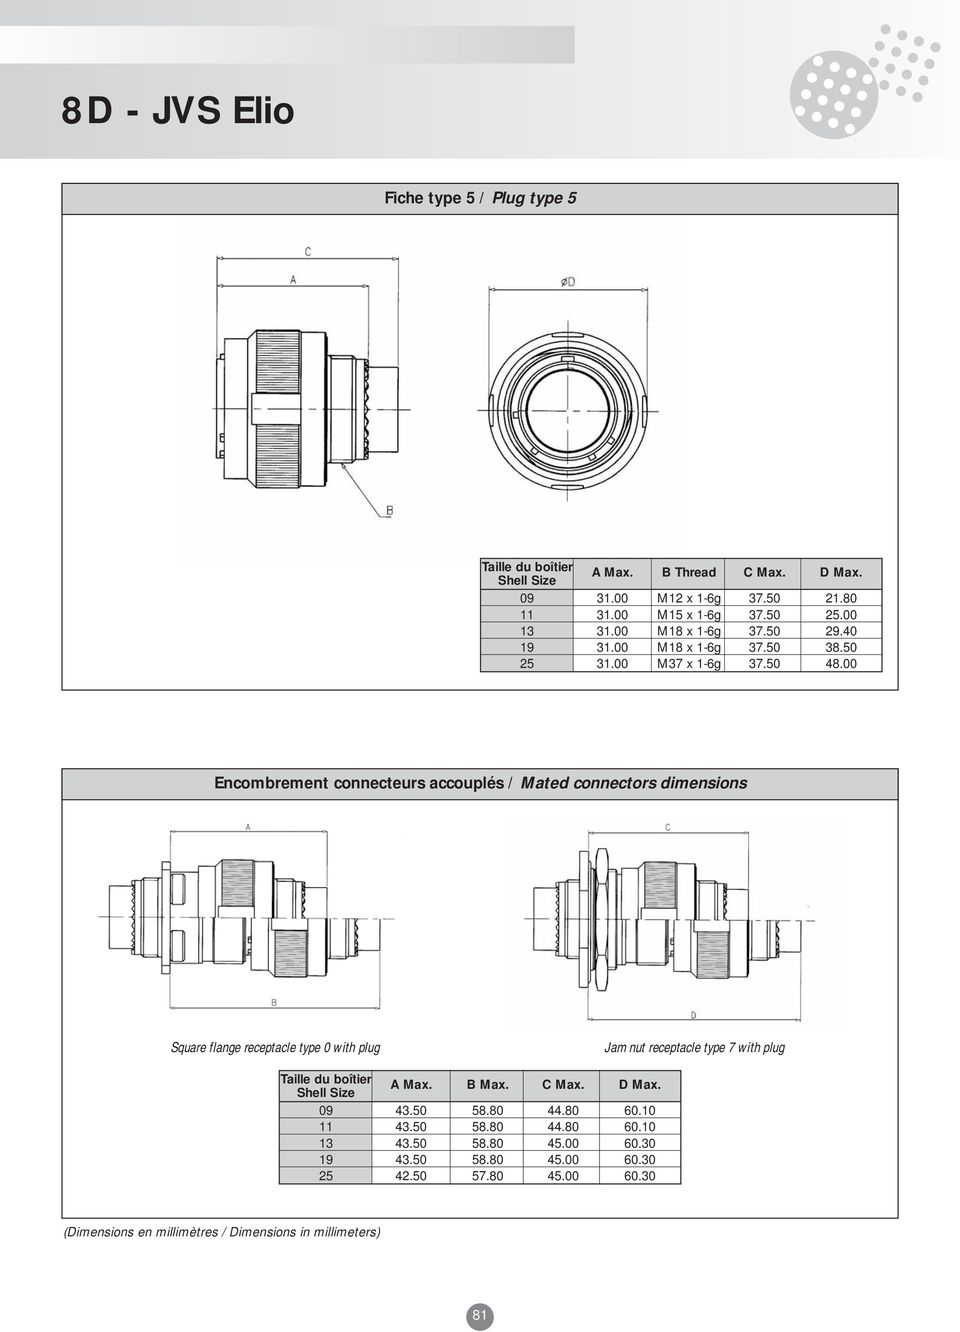 00 Encombrement connecteurs accouplés / Mated connectors dimensions Square flange receptacle type 0 with plug Jam nut receptacle type 7 with plug Taille